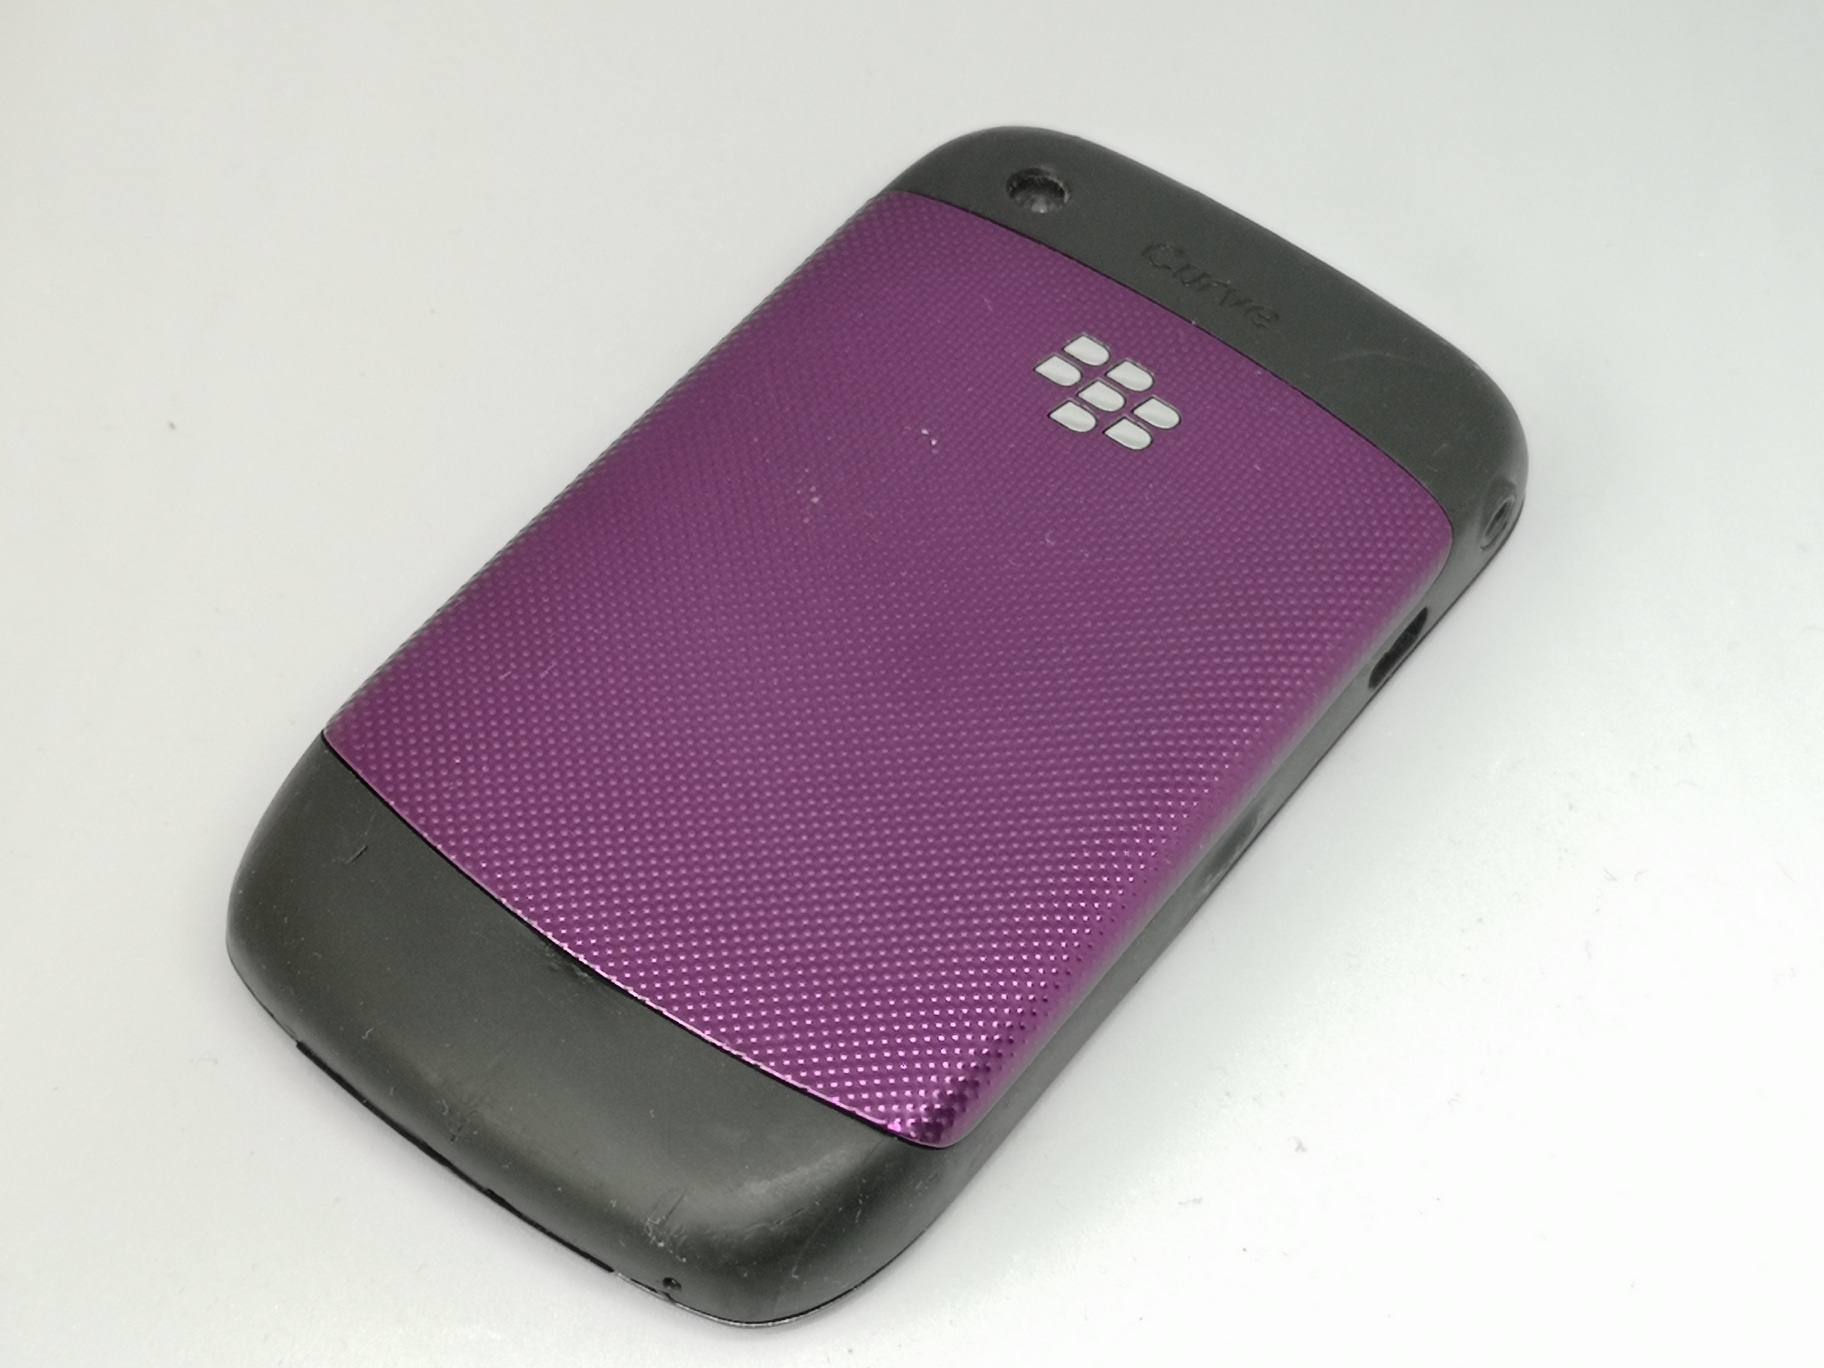 Blackberry 9300 Review - Curve 3G Gains A New Handset